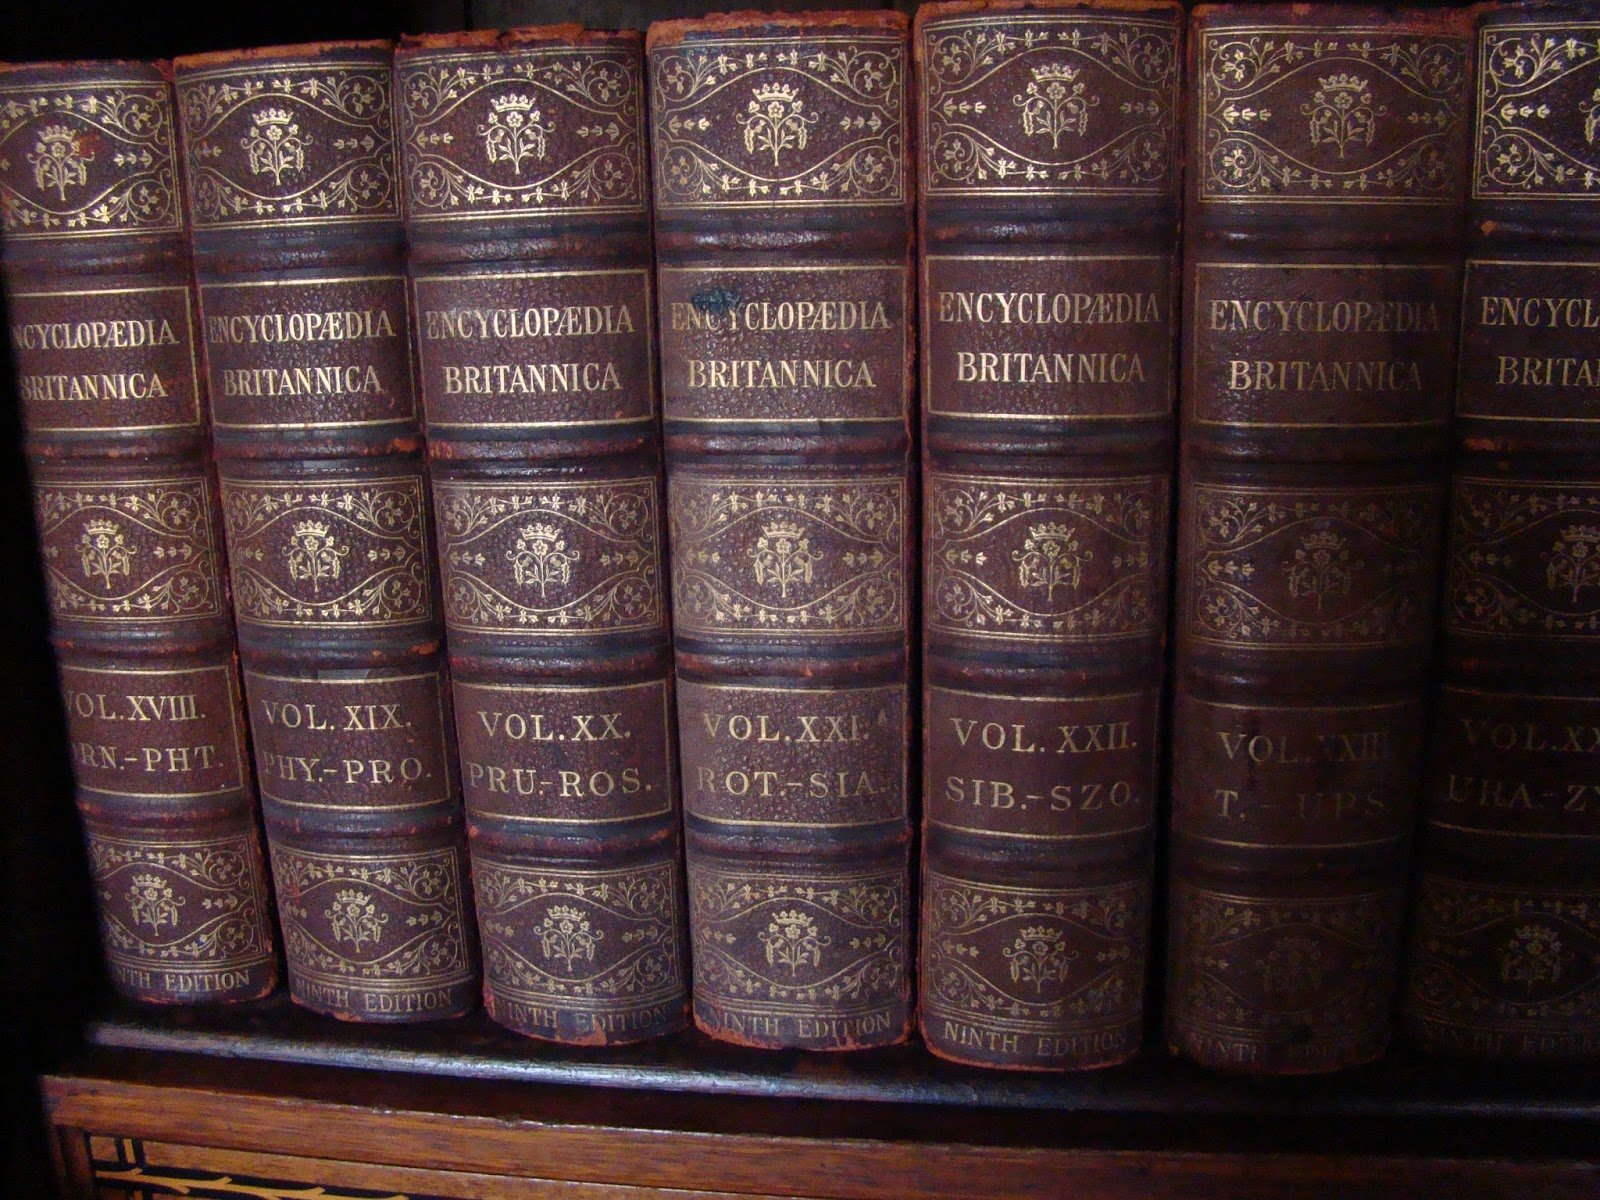 the bookshelves at 221b simanaitis says m